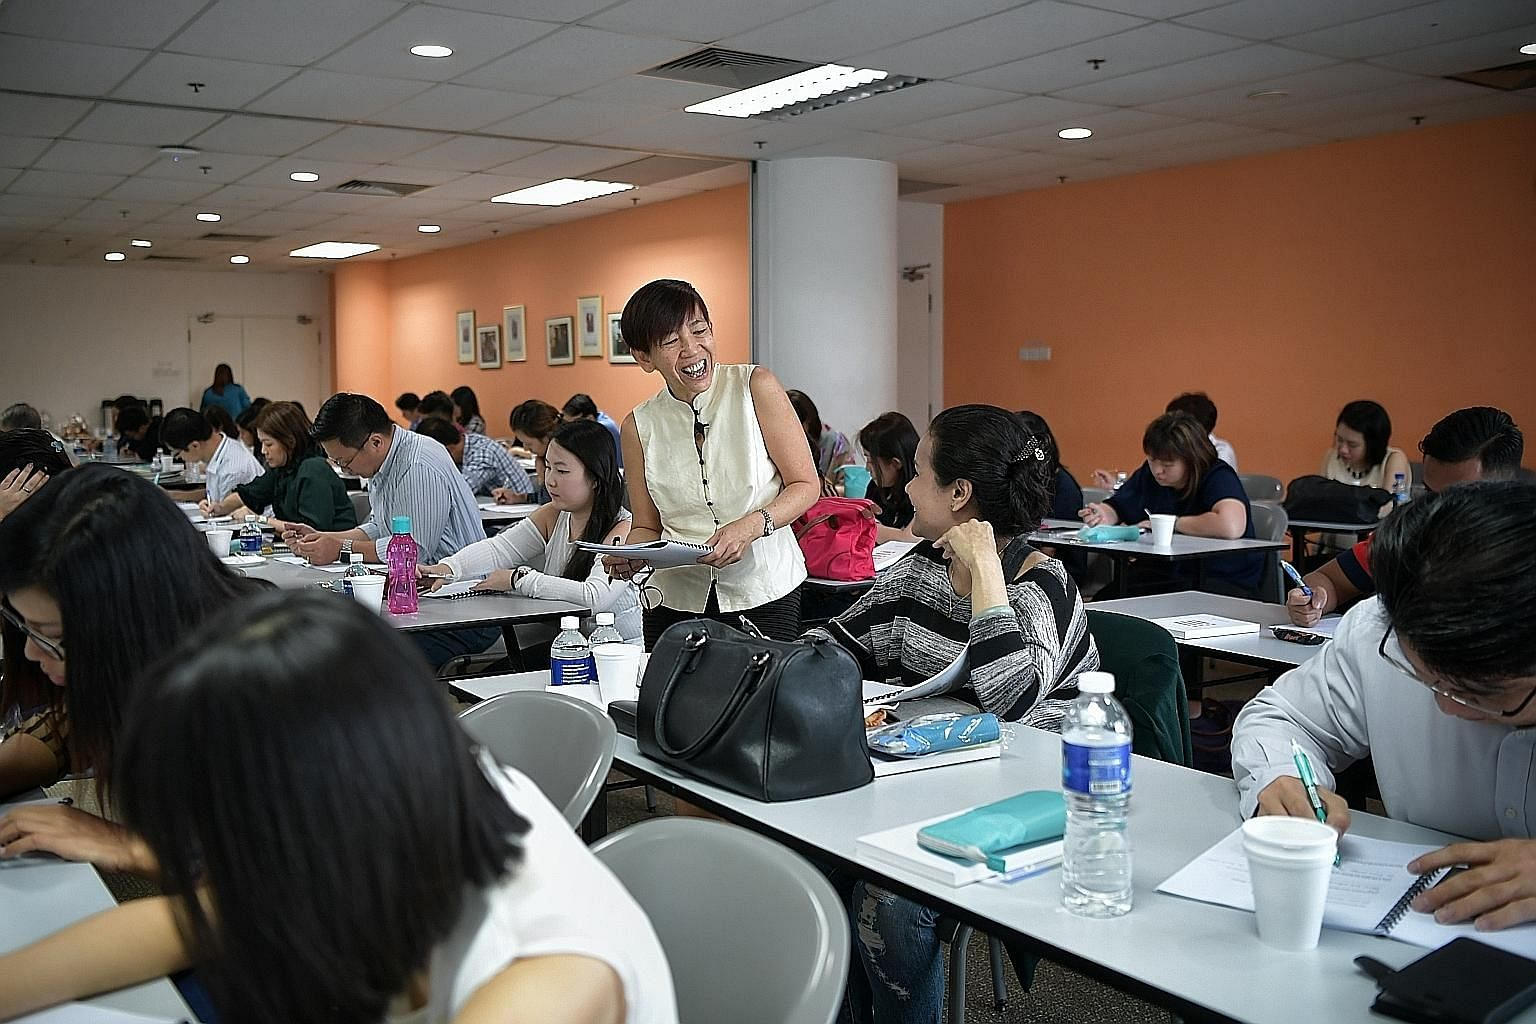 Straits Times journalist Angelina Choy conducting the ST English Masterclass last Friday. Those who have SkillsFuture Credit can now use it to offset the course fee of $499 when they sign up for the masterclass.